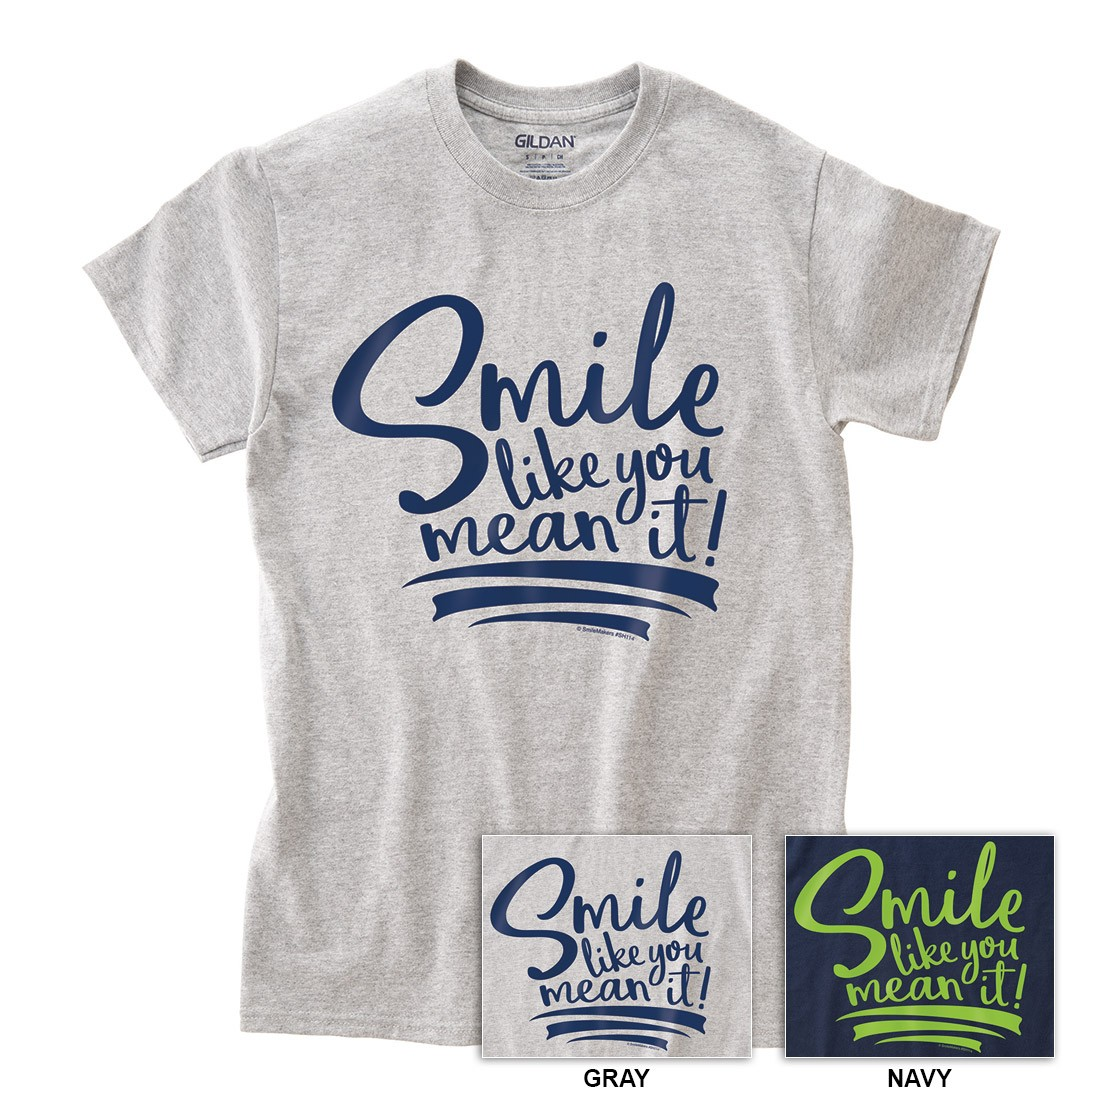 Smile Like You Mean It! T-shirts  [image]